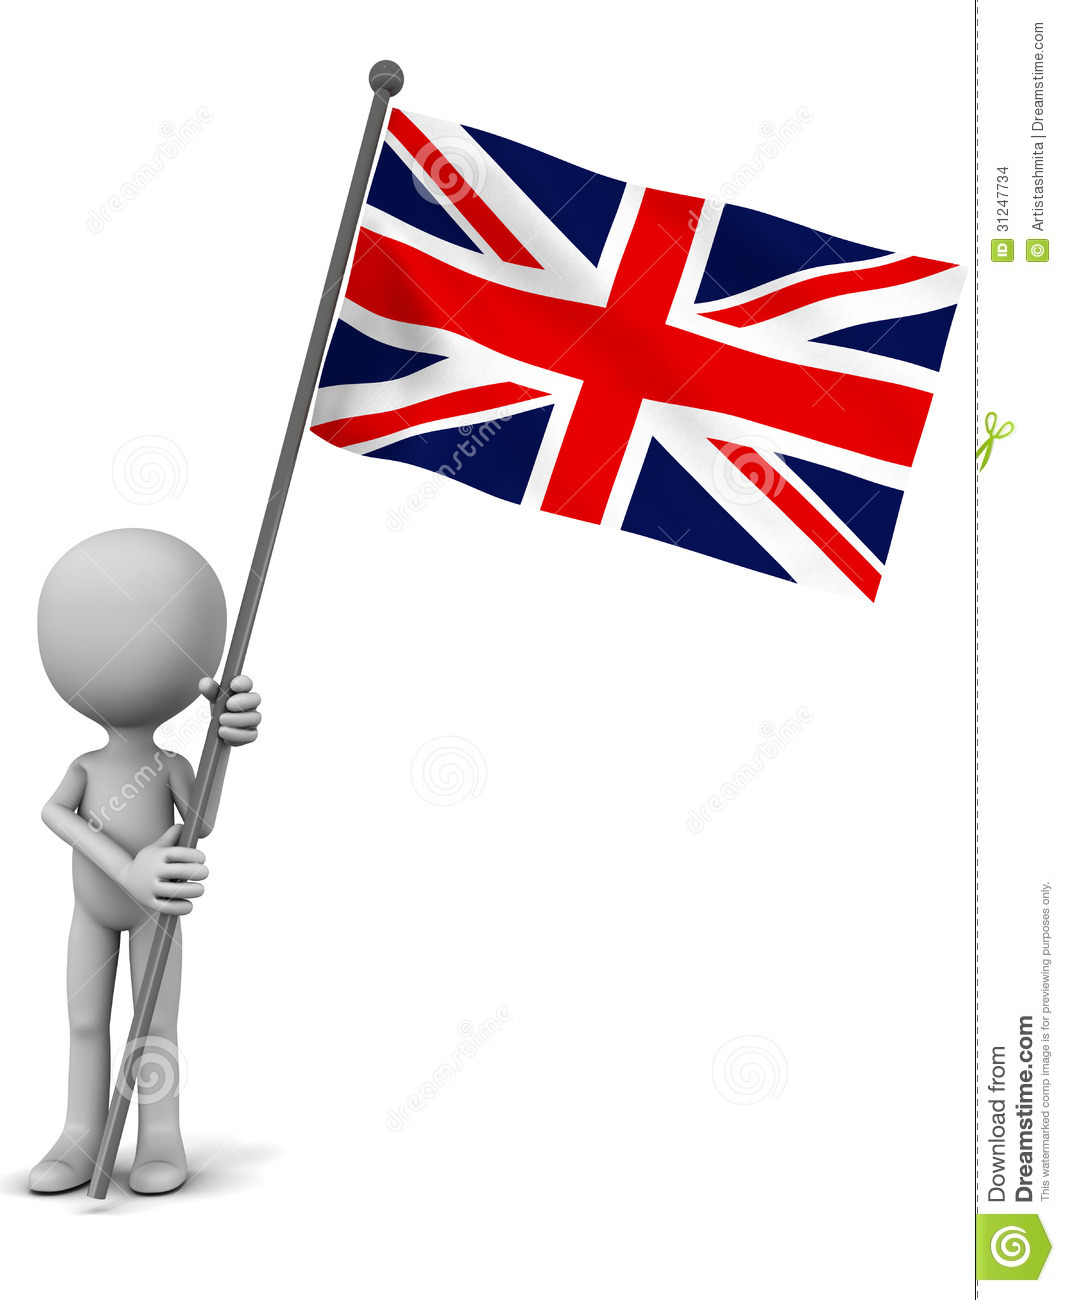 UK national flag hoisted by a little 3d man, white background.